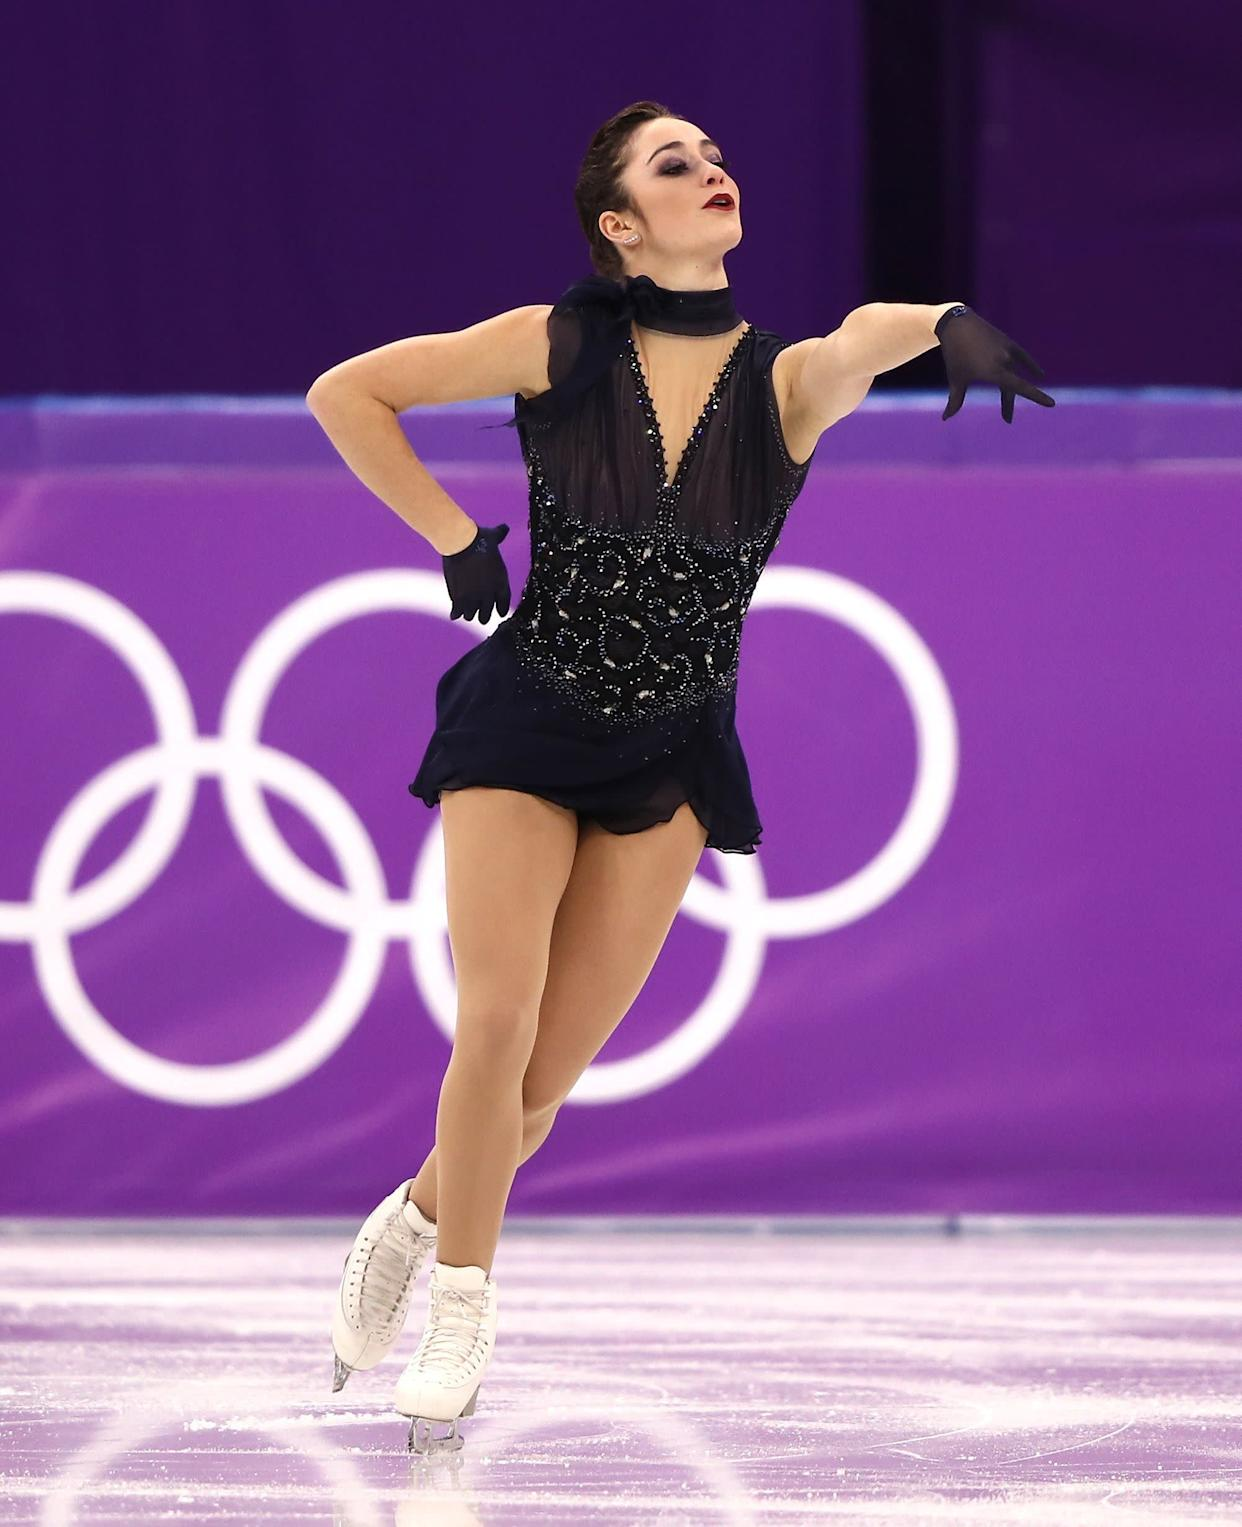 This costume, worn by the Canadian athlete for her short program, was one of our favorites of the competition.It looked beautiful on Osmond and definitely conveyed the Parisian aesthetic -- she performed to music by Edith Piaf -- she was going for.